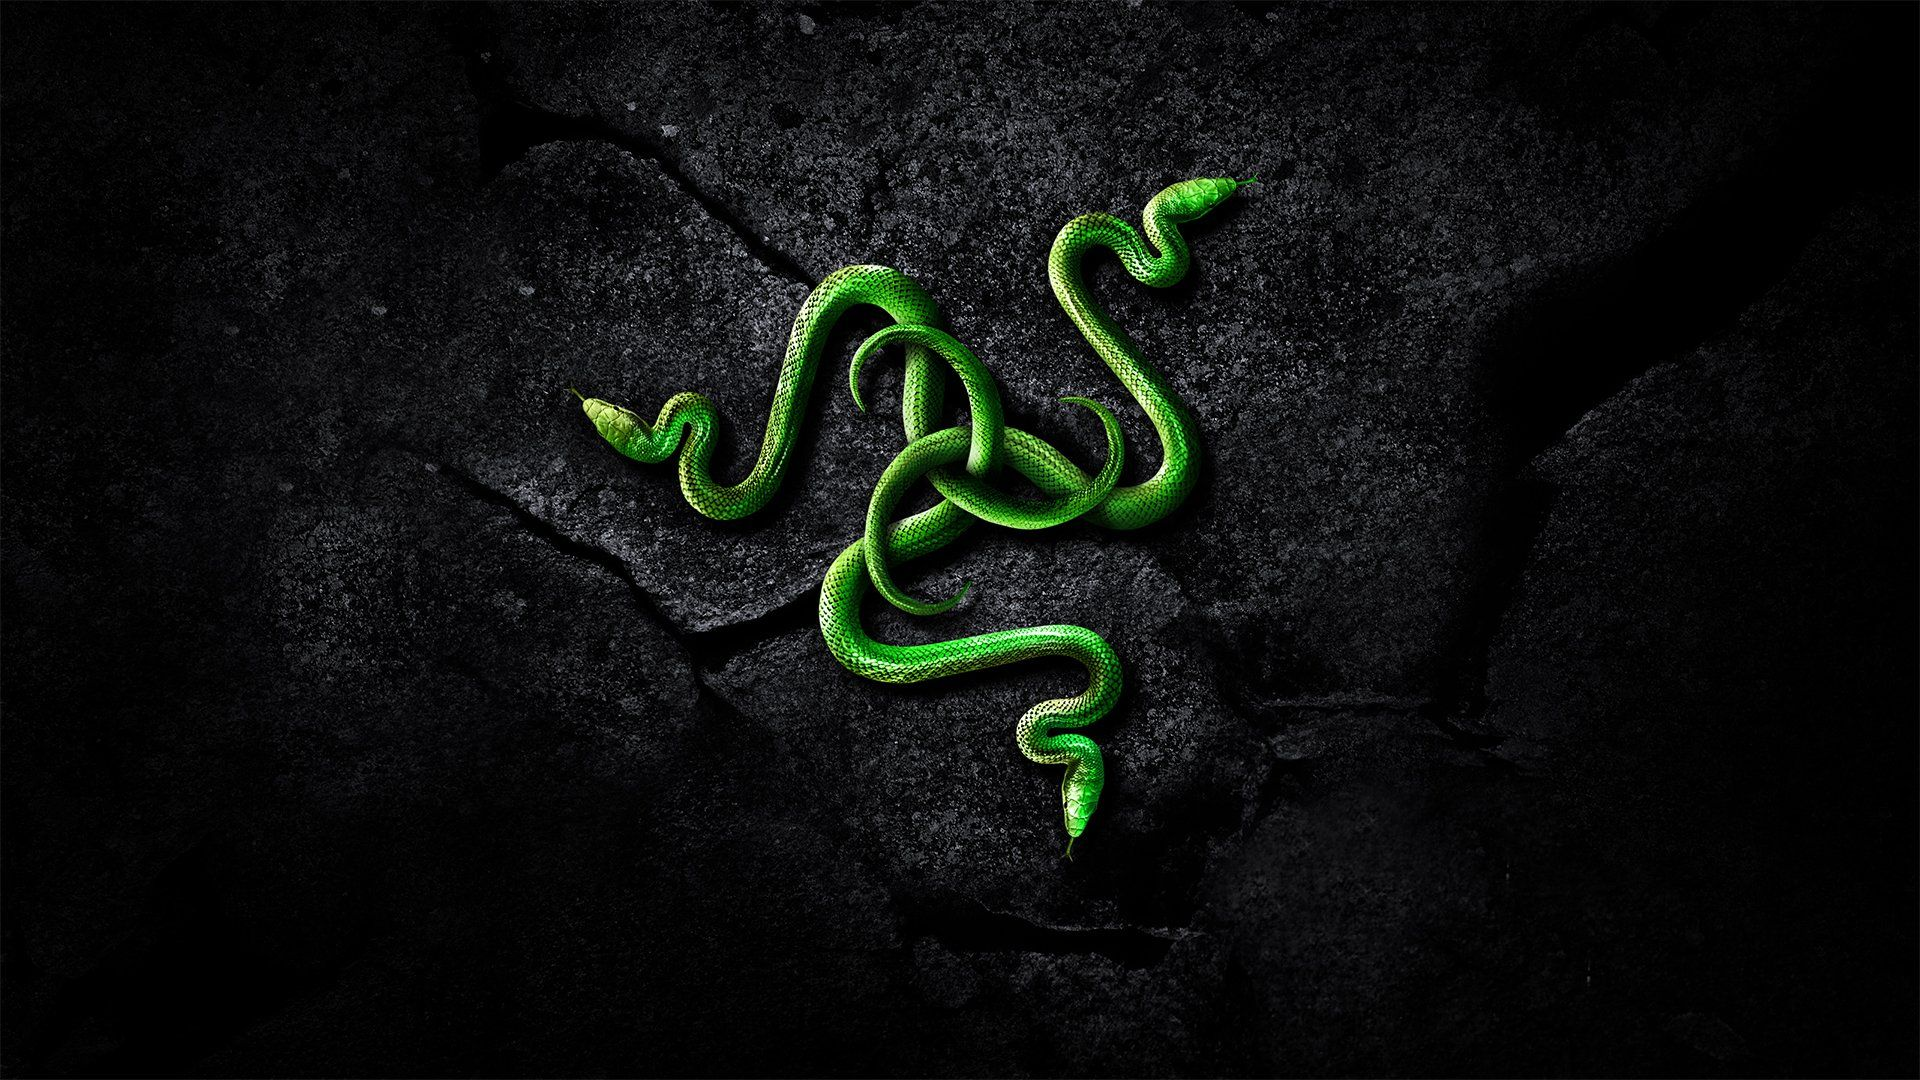 10 New Razer Wallpaper Hd 1080p Full Hd 1080p For Pc Background Wallpaper Backgrounds Black Phone Wallpaper Gaming Wallpapers